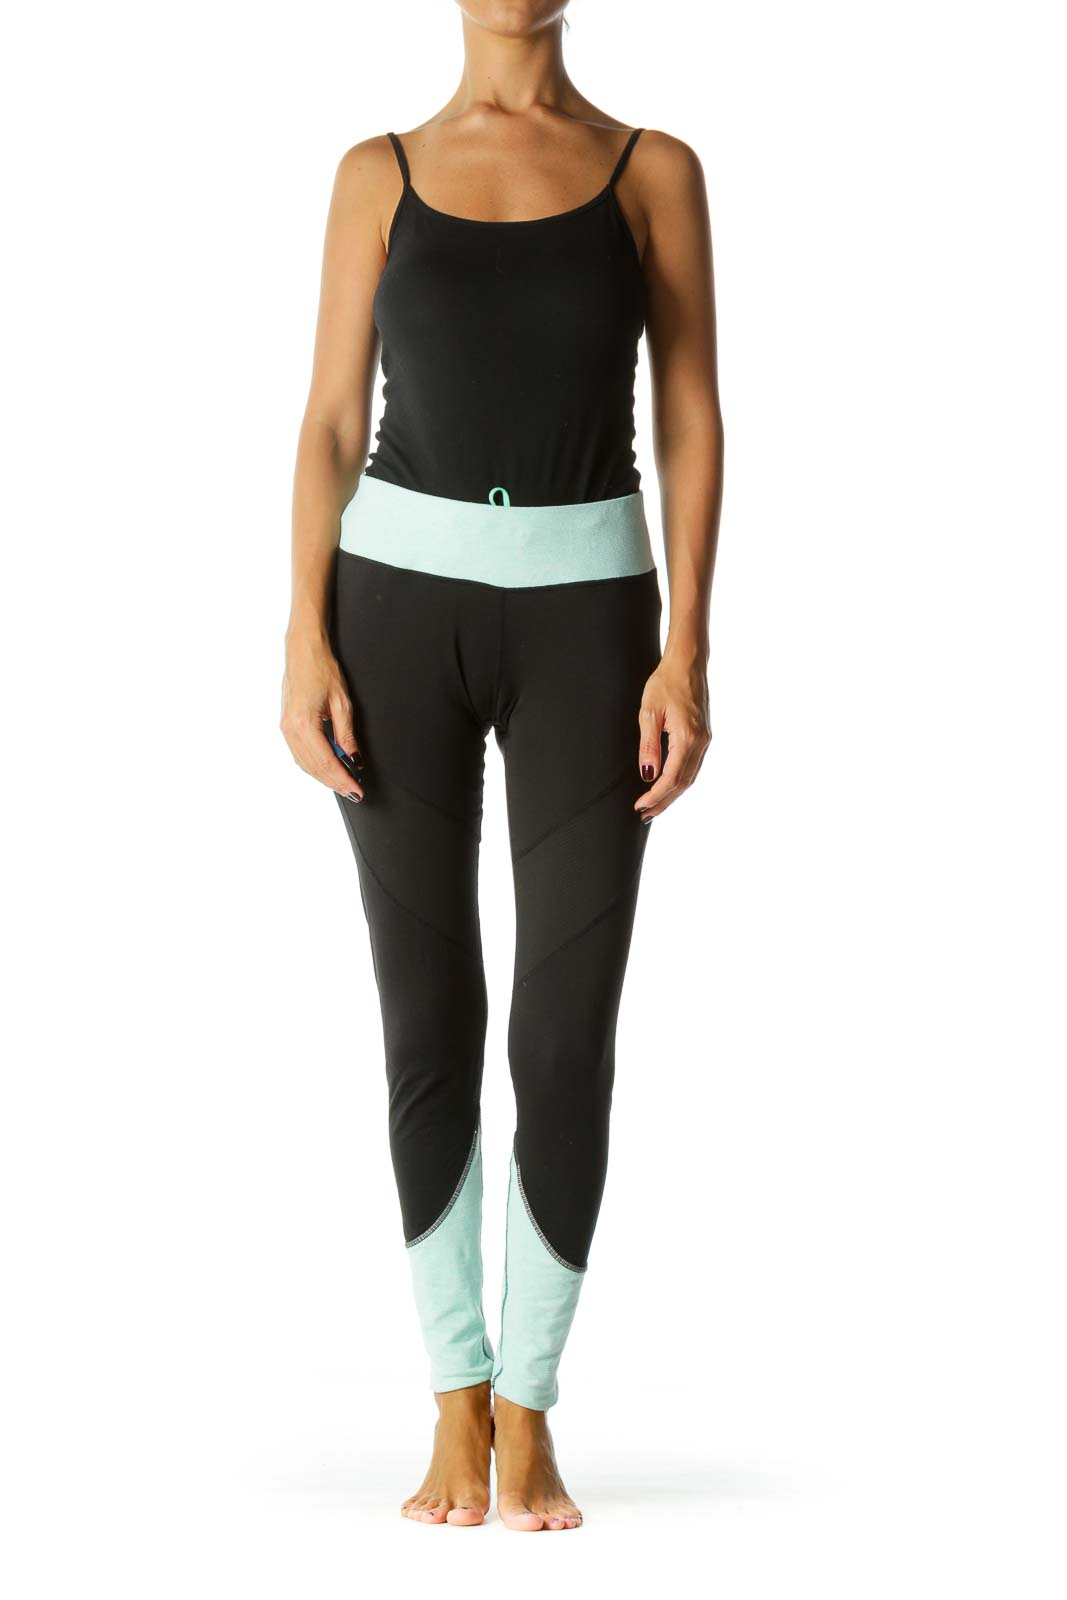 Black and Teal Color Blocked Leggings